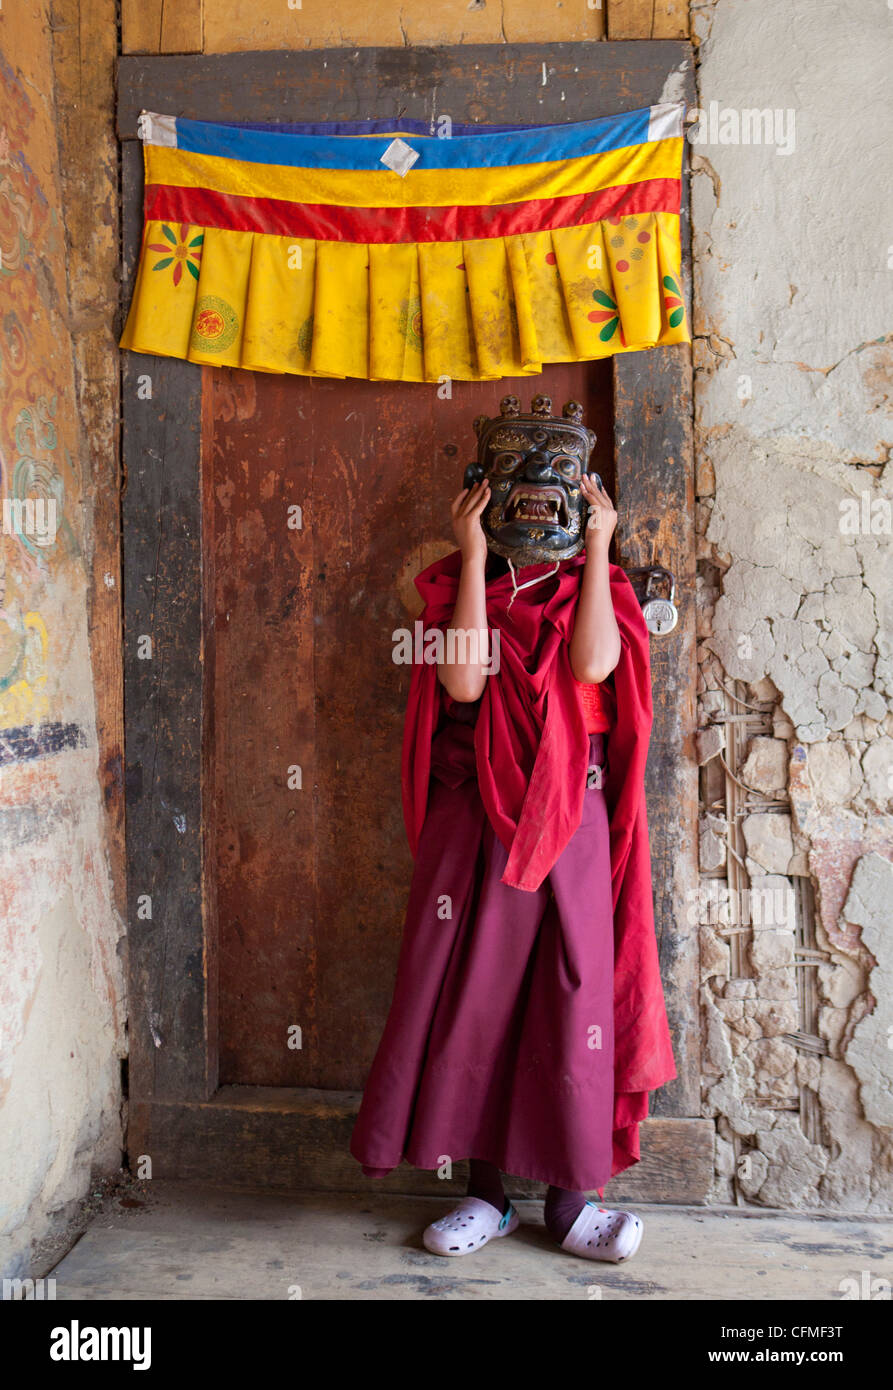 Young Buddhist holding holding carved wooden mask, Jakar, Bumthang, Bhutan, Asia - Stock Image